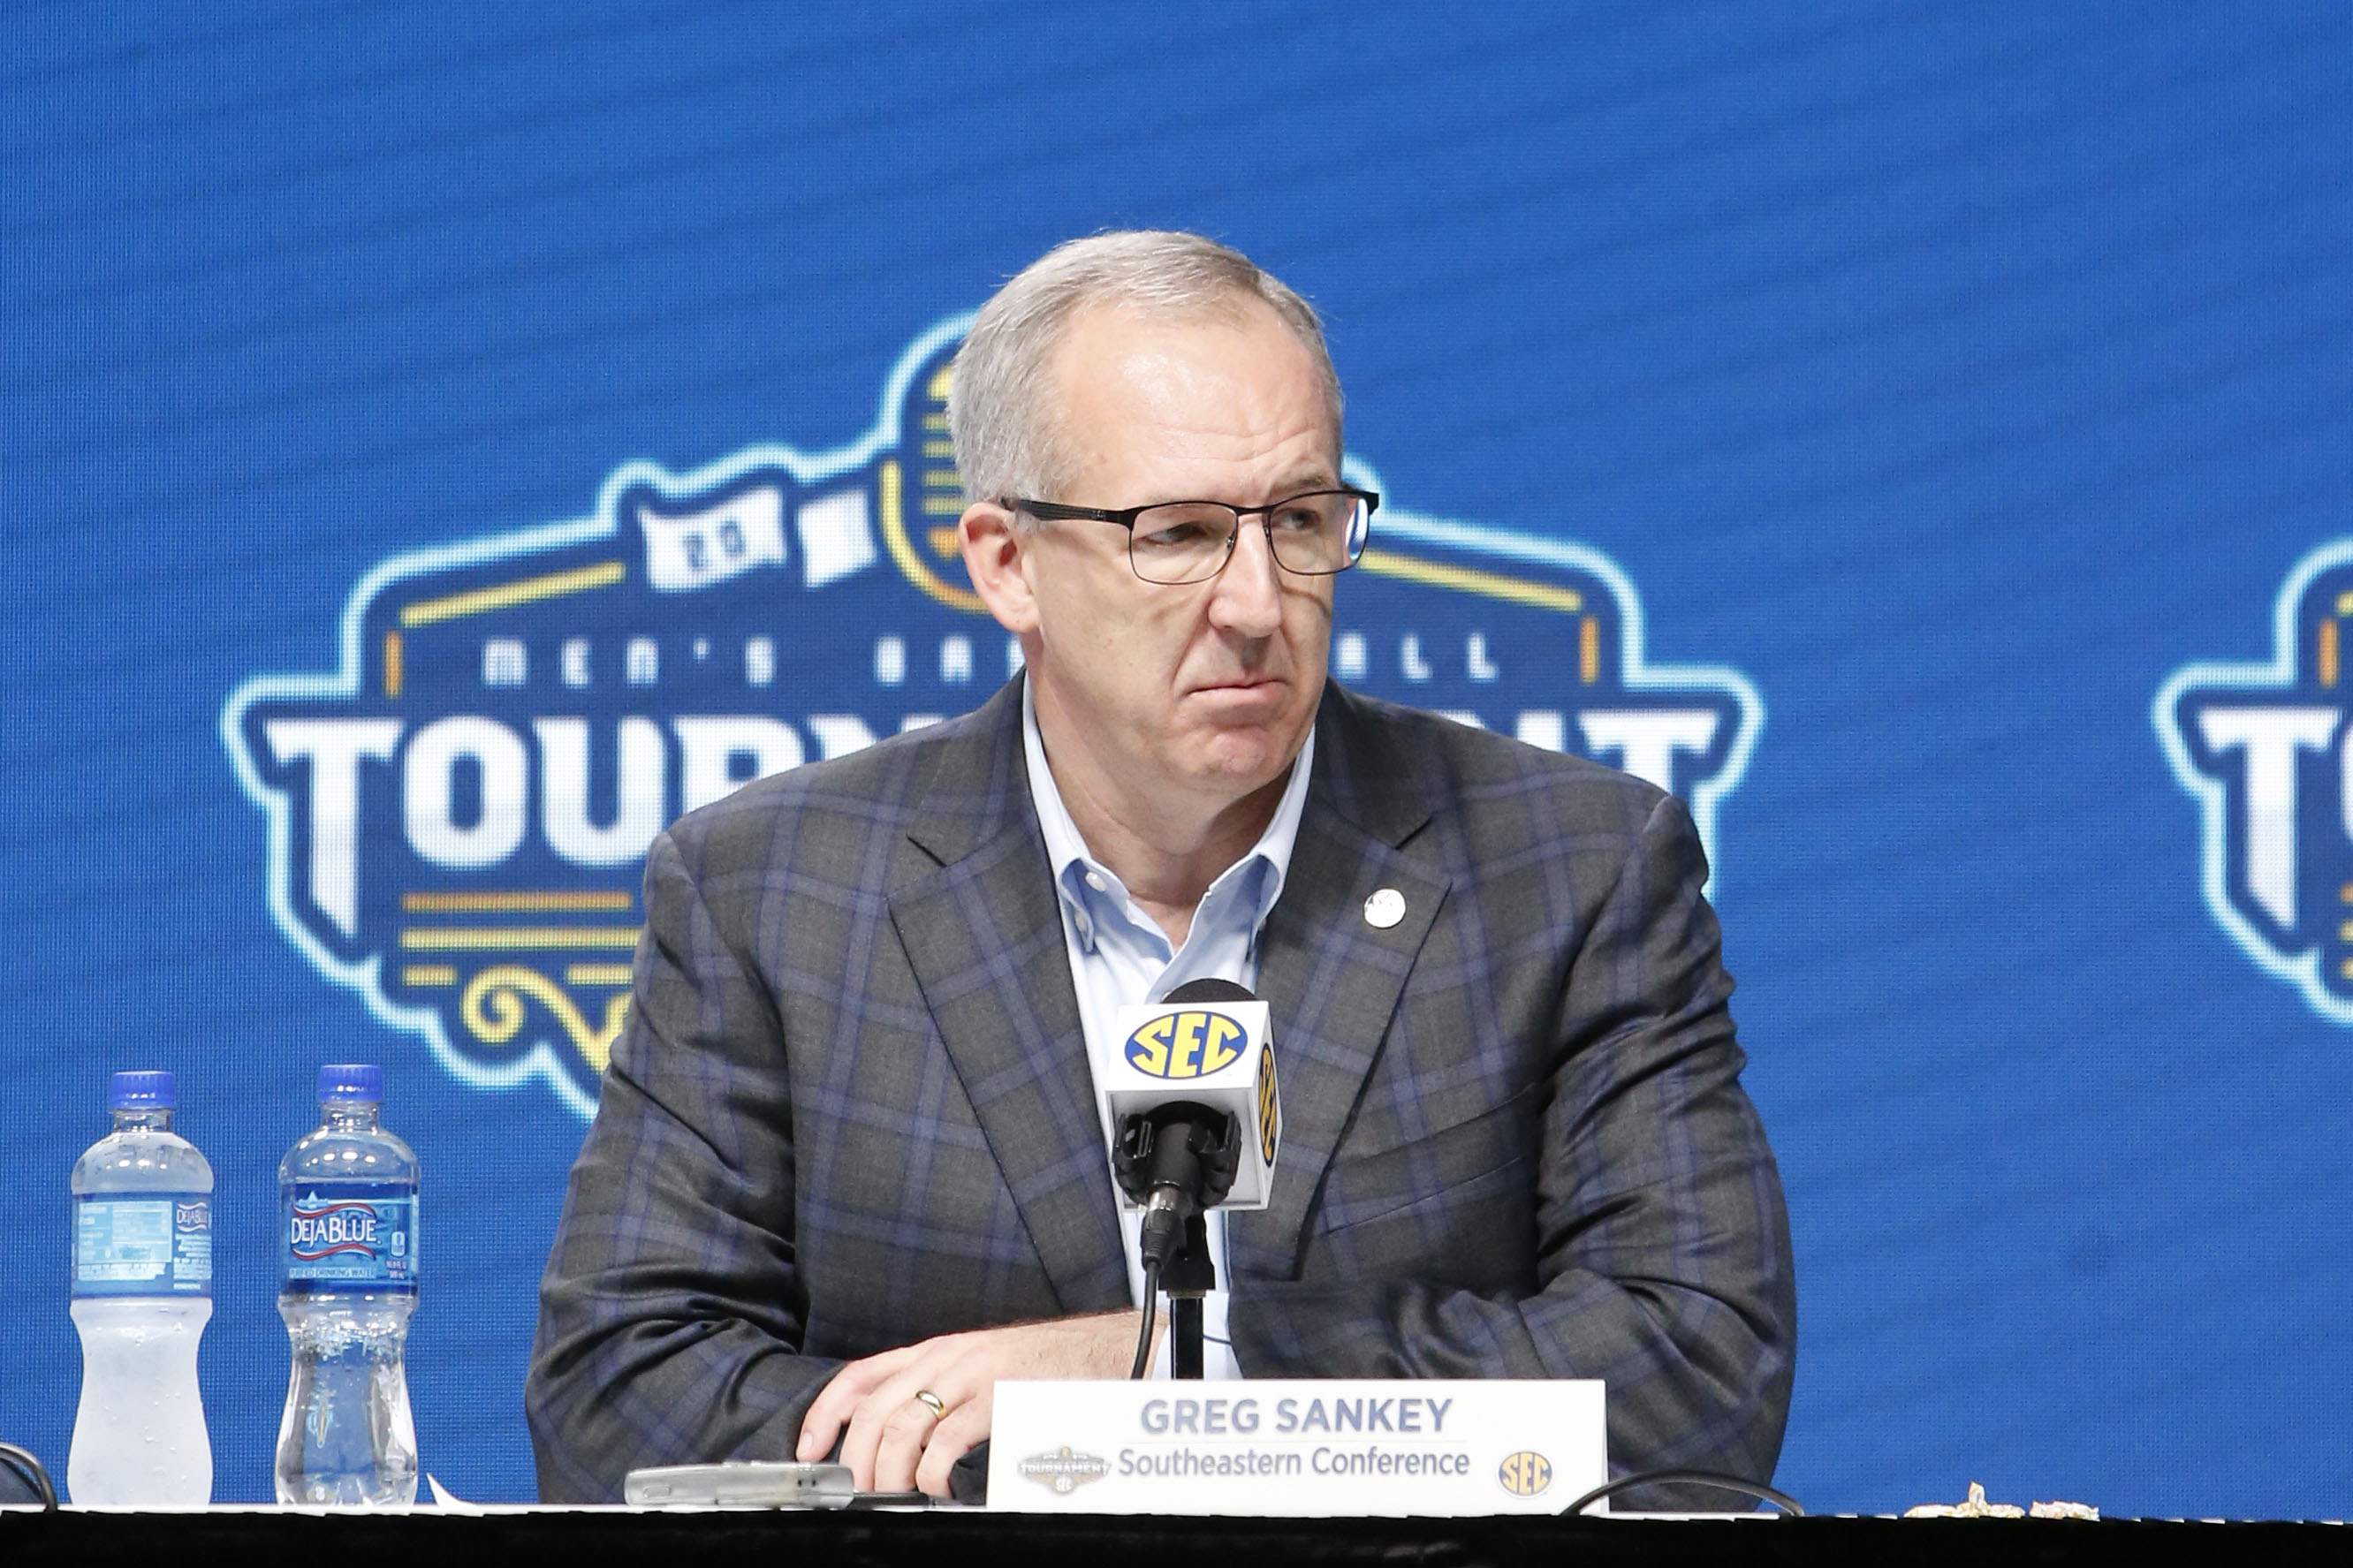 Southeastern Conference commissioner Greg Sankey attends a press conference in Nashville on March 12.